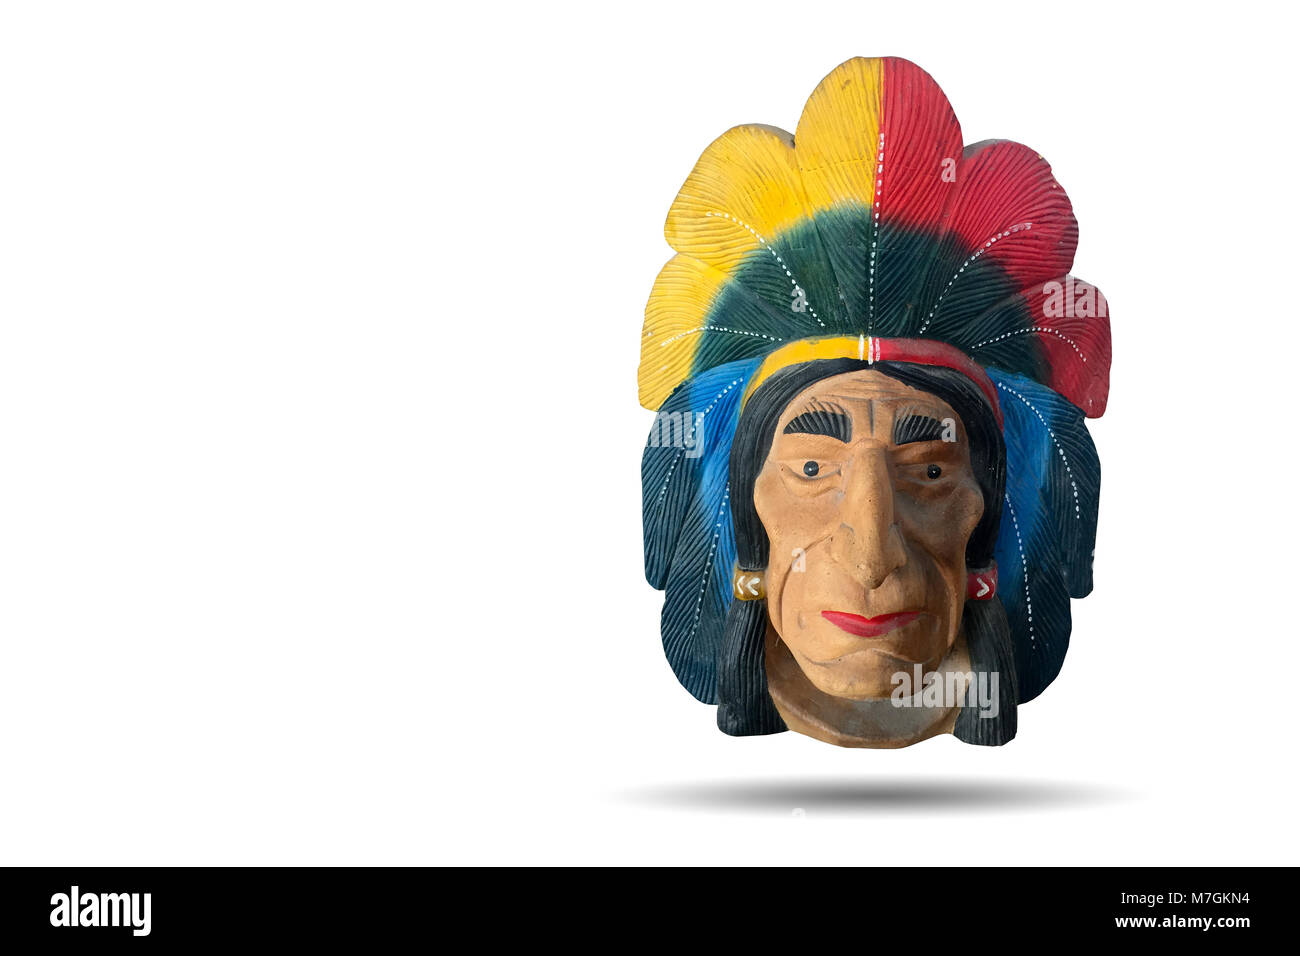 Plaster sculpture of red indian, native american people. Showing the tribe chief face and headdress full of eagle - Stock Image